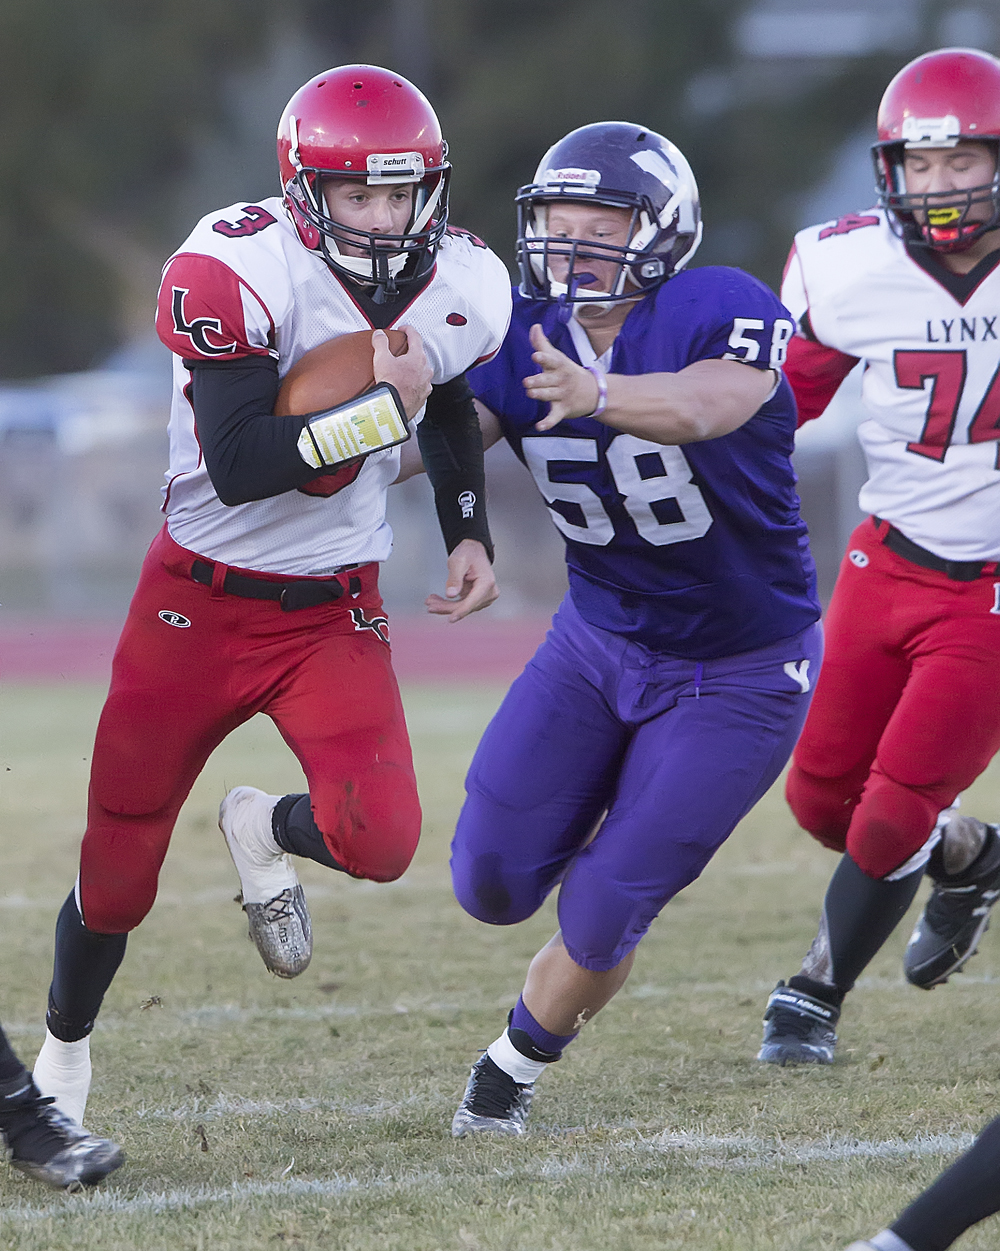 Red zone turnovers cost Lincoln County in state title game